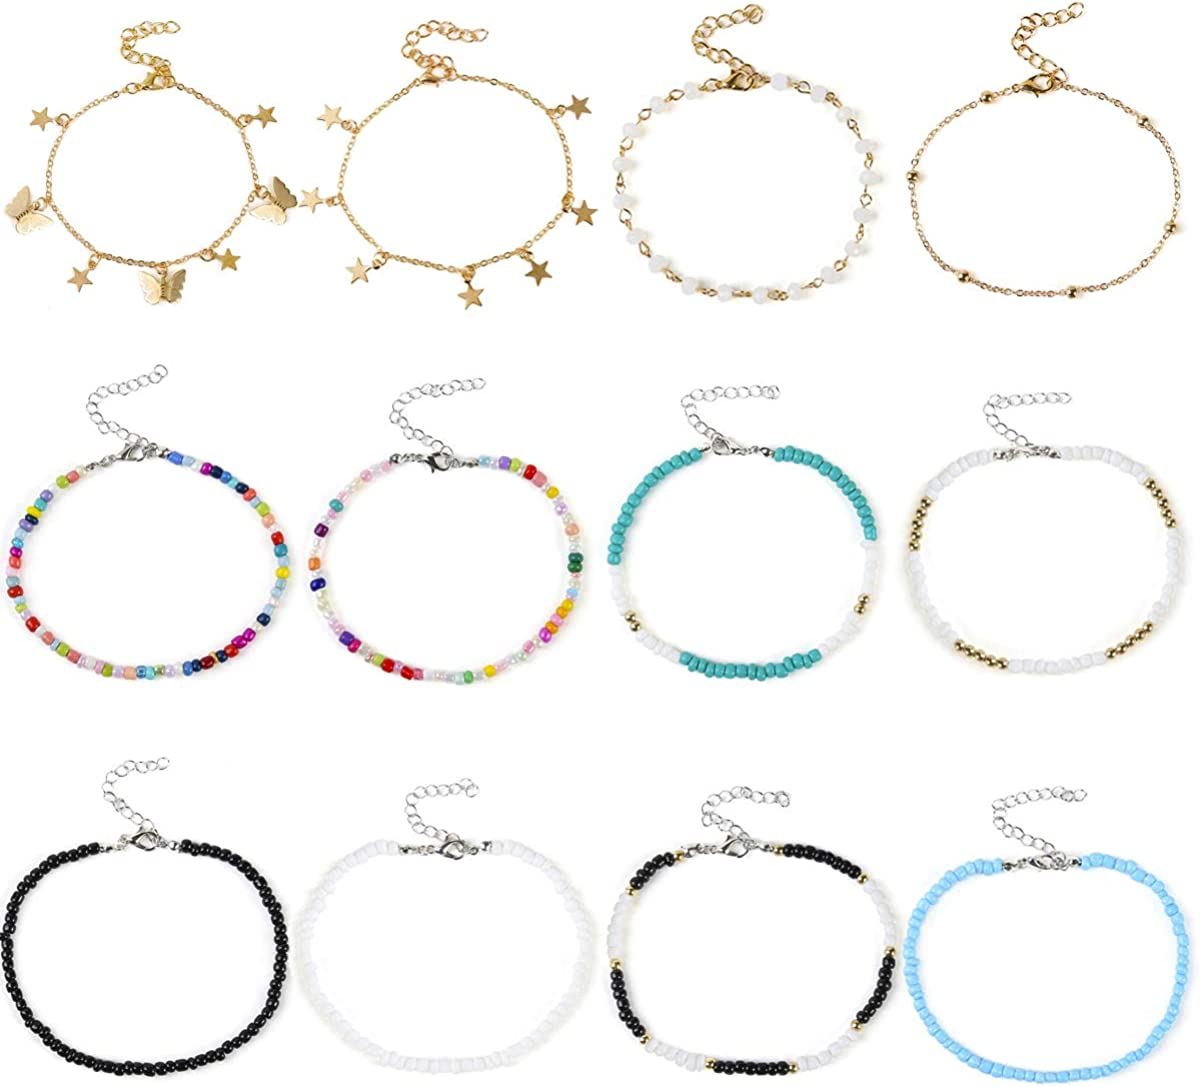 Beach Anklet Bracelet for Women Seed Beaded Anklet Adjustable Gold Charm Chain Anklet Butterfly Star Anklet Foot Jewelry for Summer 12 Pcs